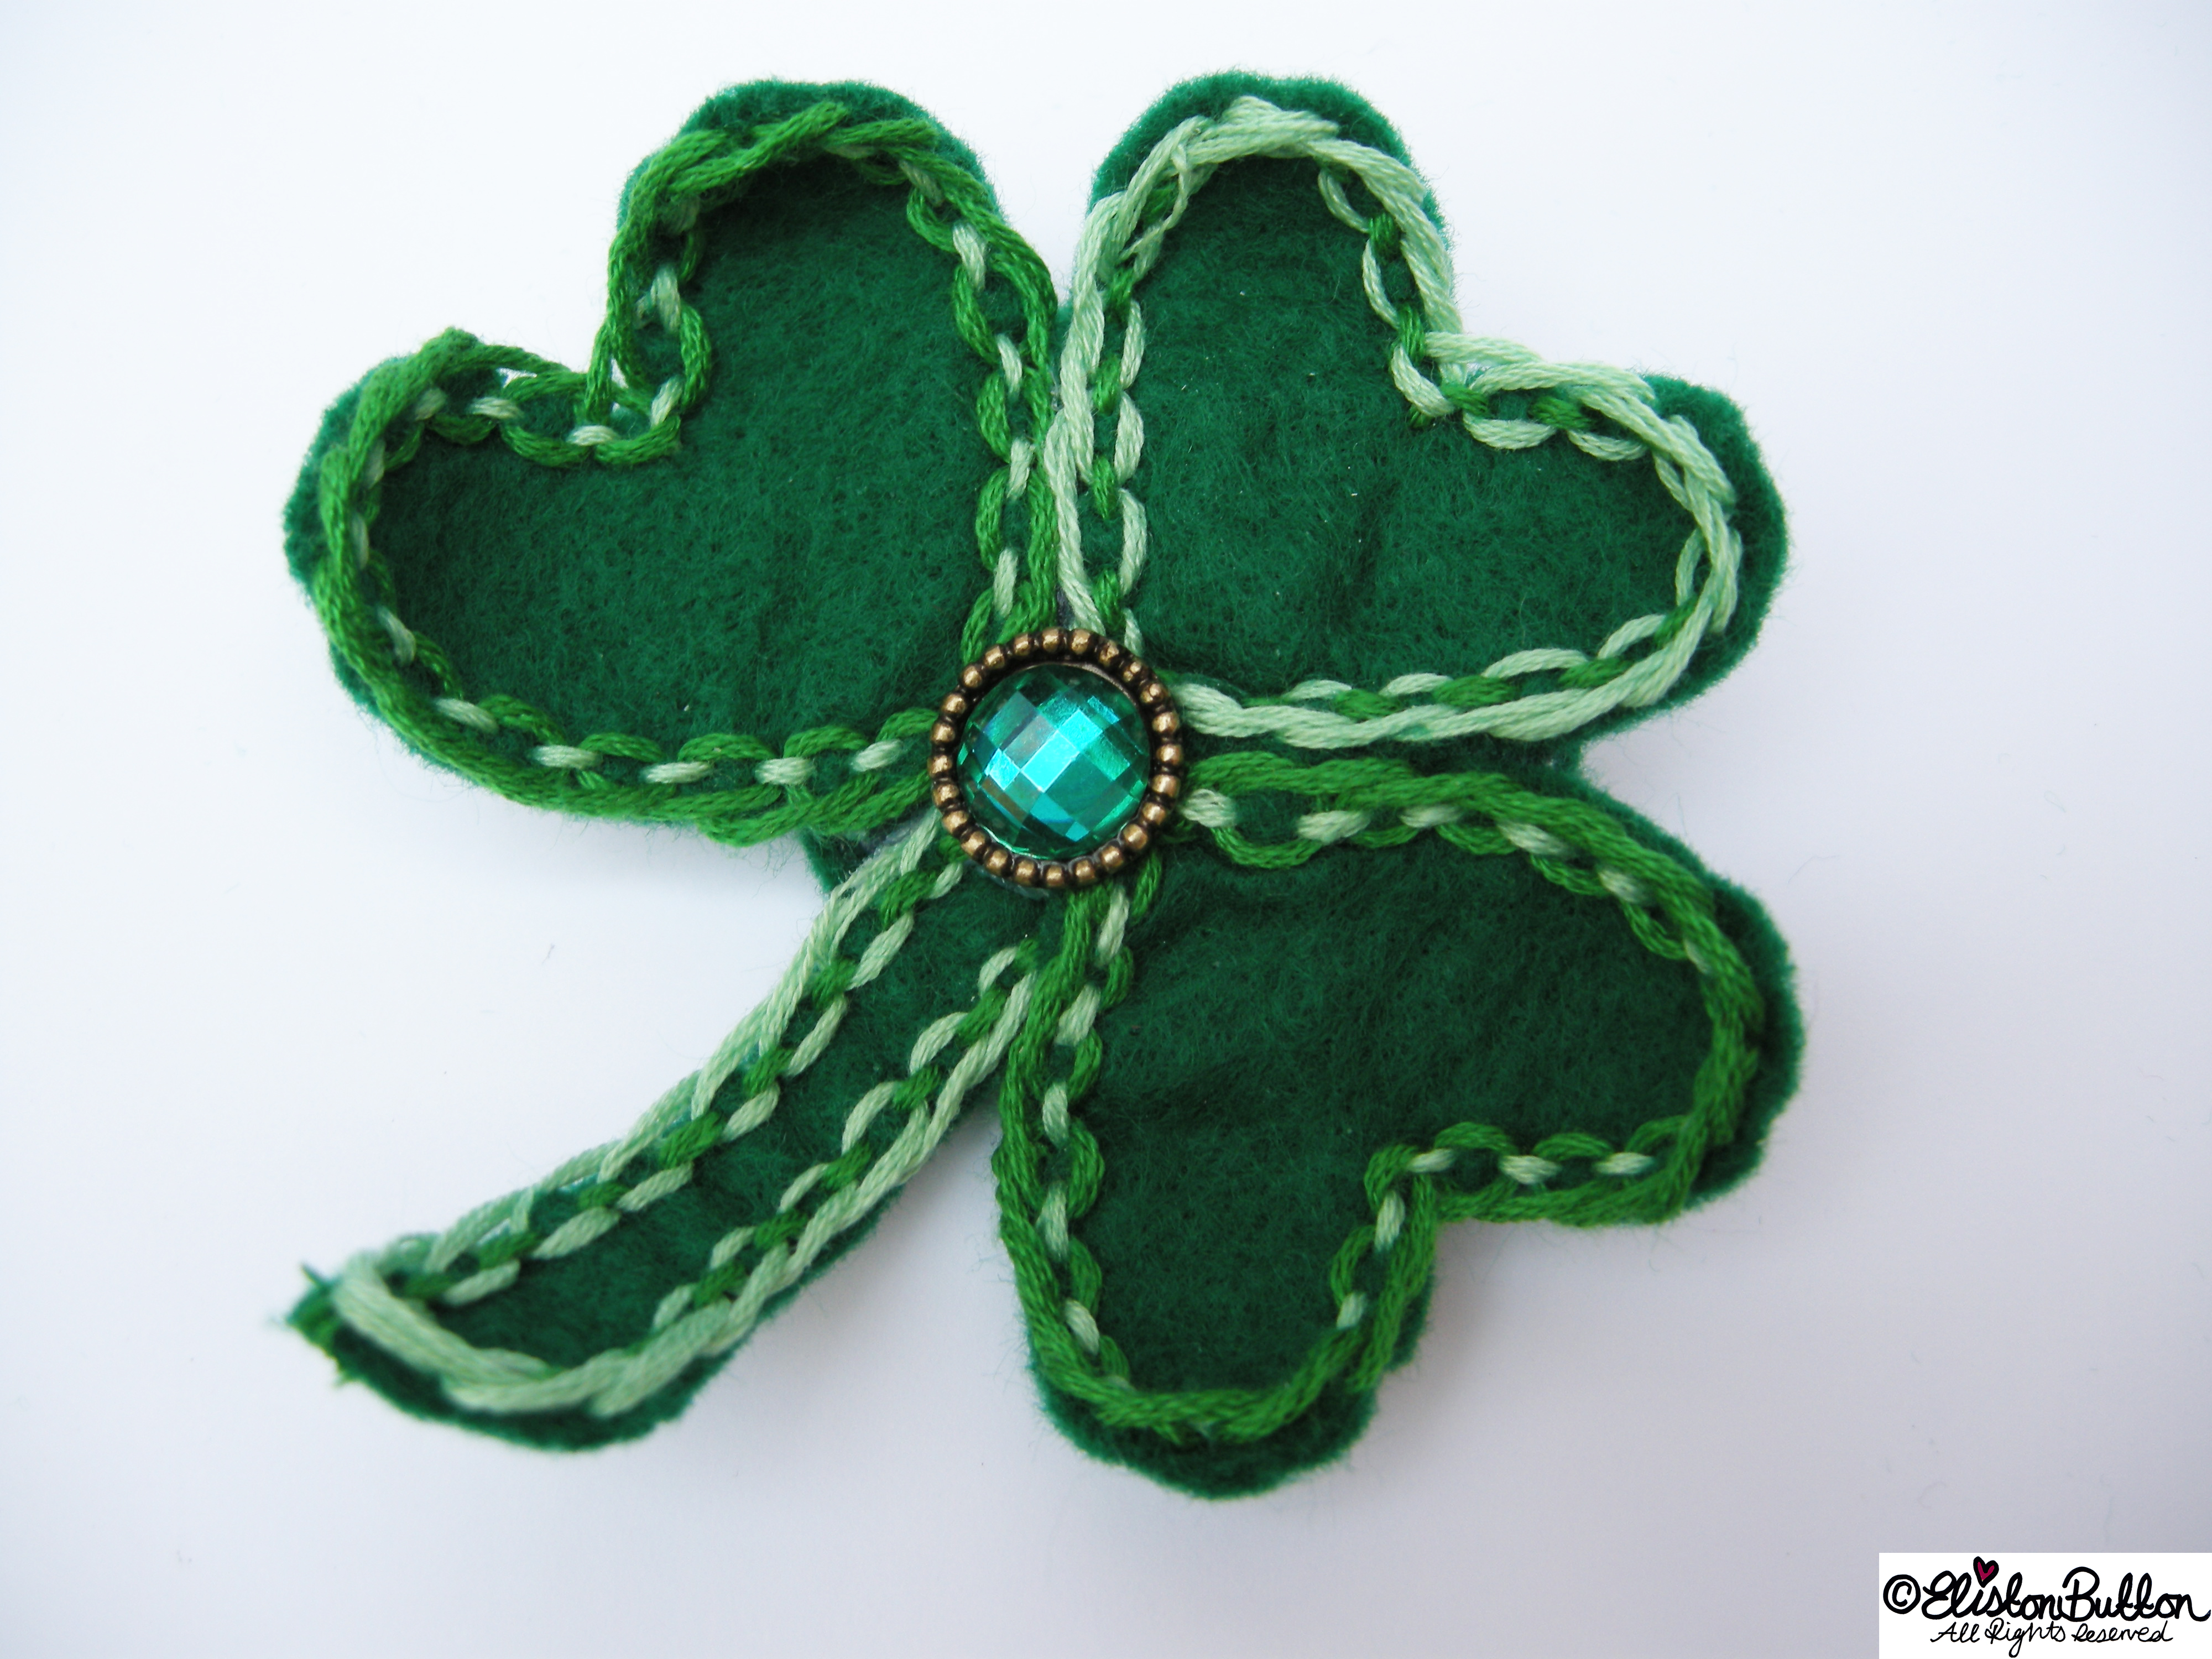 Embroidered Felt Shamrock Clover Shaped Brooch - 27 Before 27 – Lucky at www.elistonbutton.com - Eliston Button - That Crafty Kid – Art, Design, Craft & Adventure.